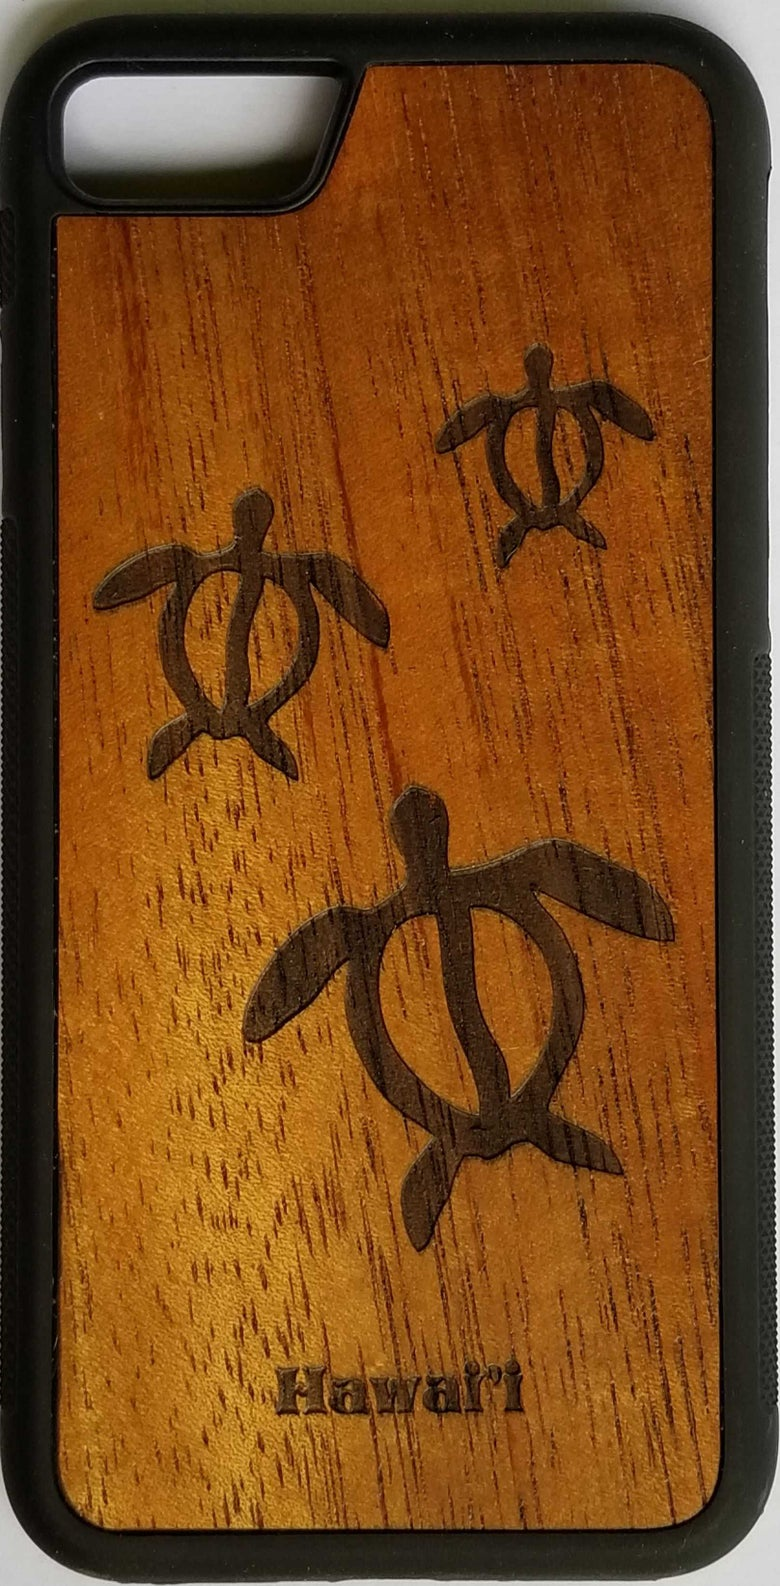 Image of Honu (sea turtle) glyph Koa wood phone case